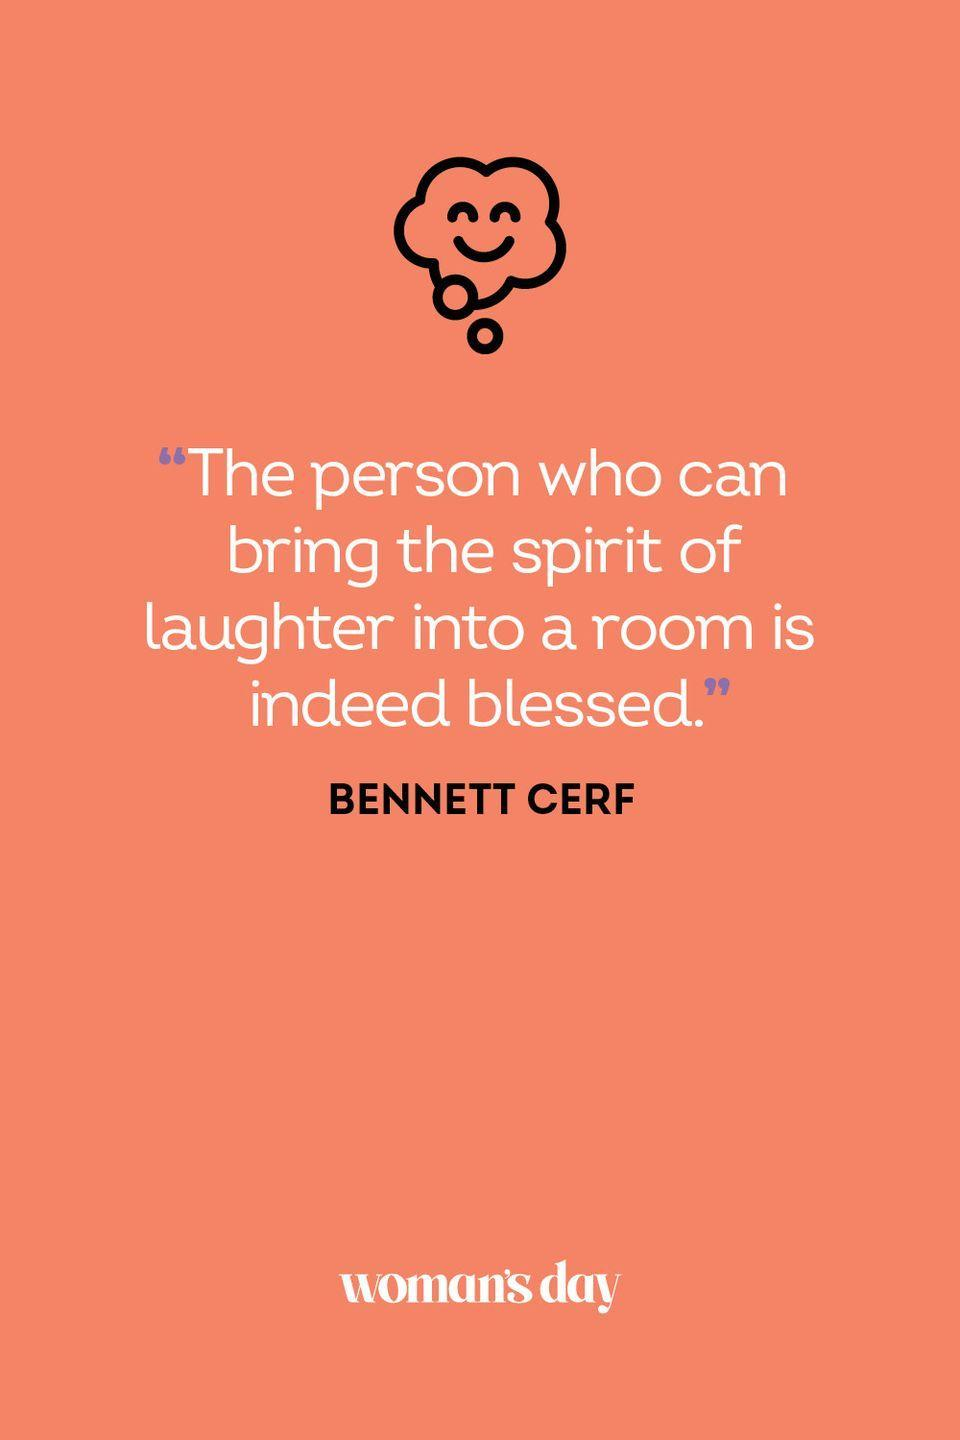 <p>The person who can bring the spirit of laughter into a room is indeed blessed.</p>